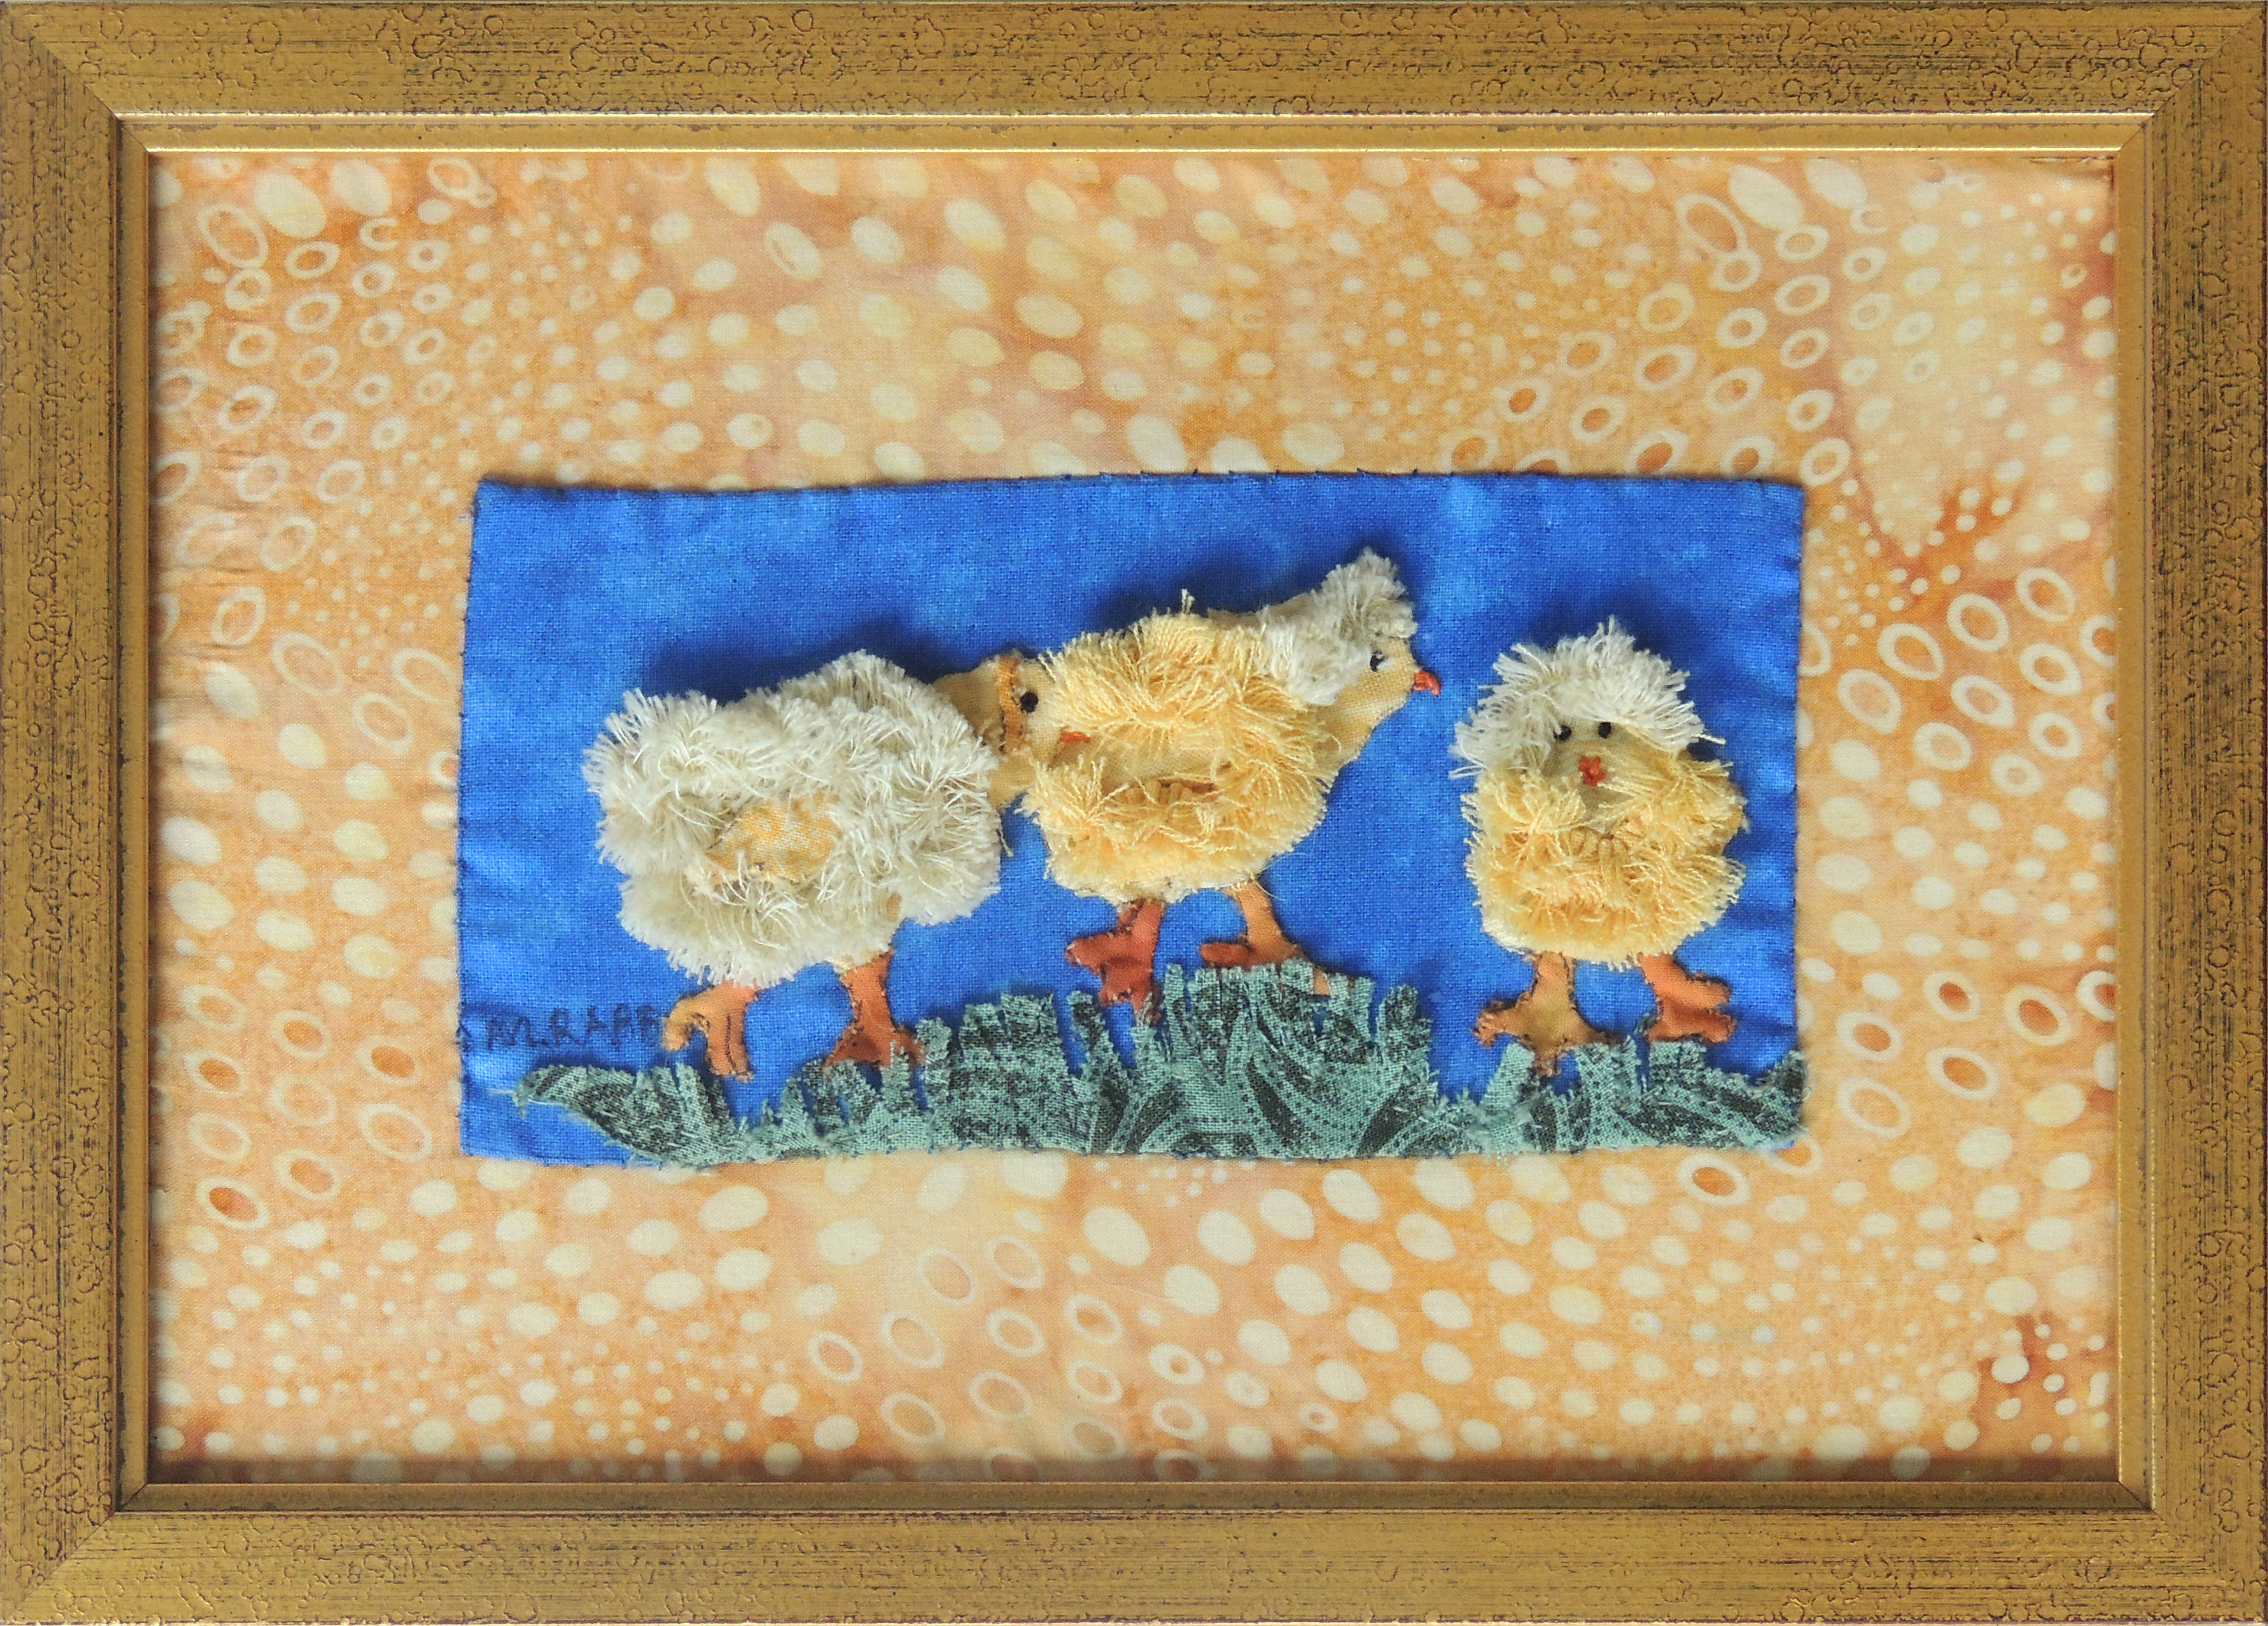 Marianne Rabb Britton | CHICKS | Fabric & Embroidery | 7 x 9.5"